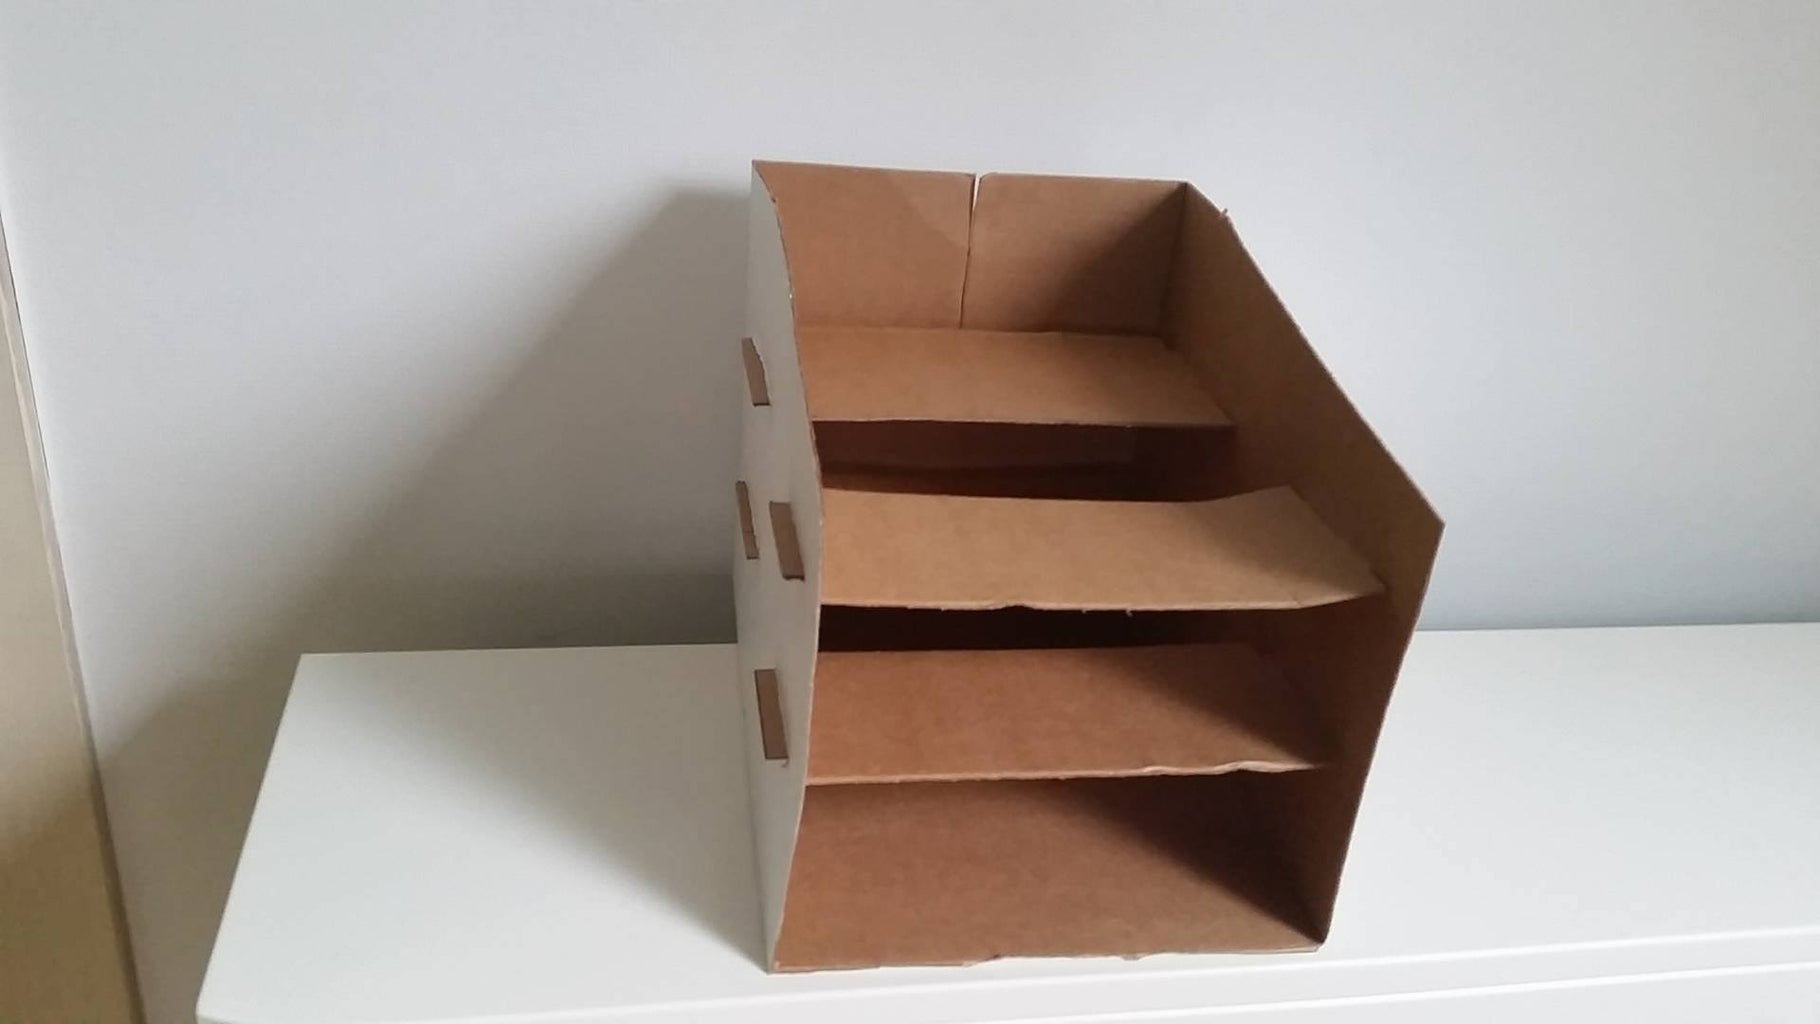 Not Only a Paperbox